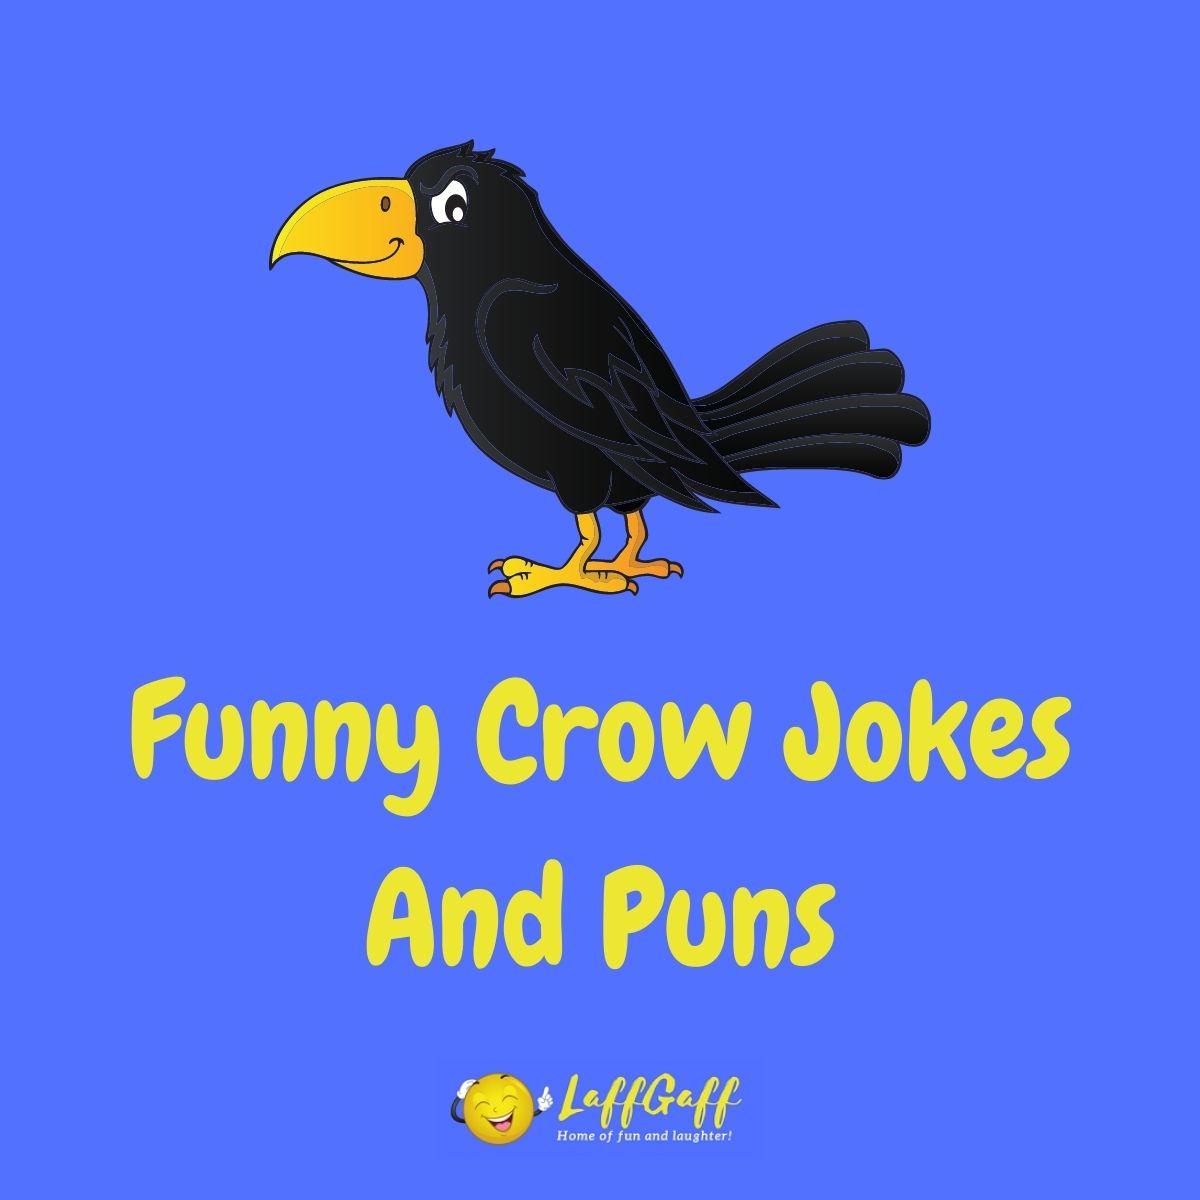 Featured image for a page of funny crow jokes and puns.